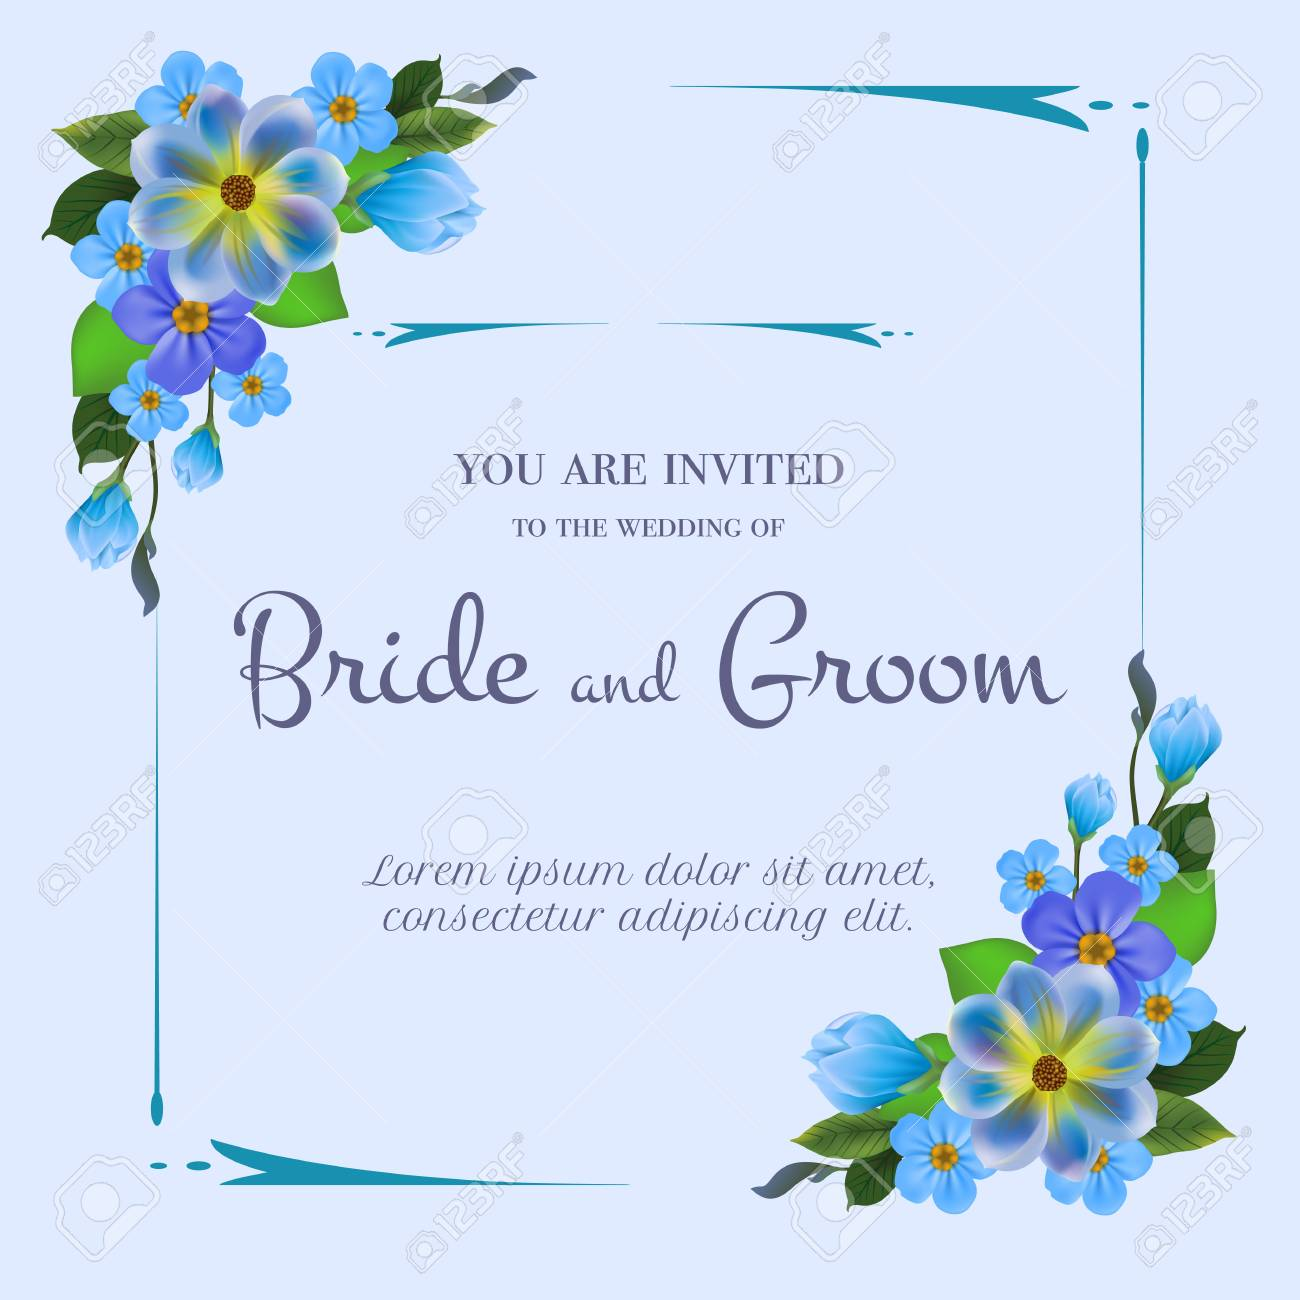 Wedding Invitation Design With Blue Flowers On Light Blue Background Royalty Free Cliparts Vectors And Stock Illustration Image 103594616